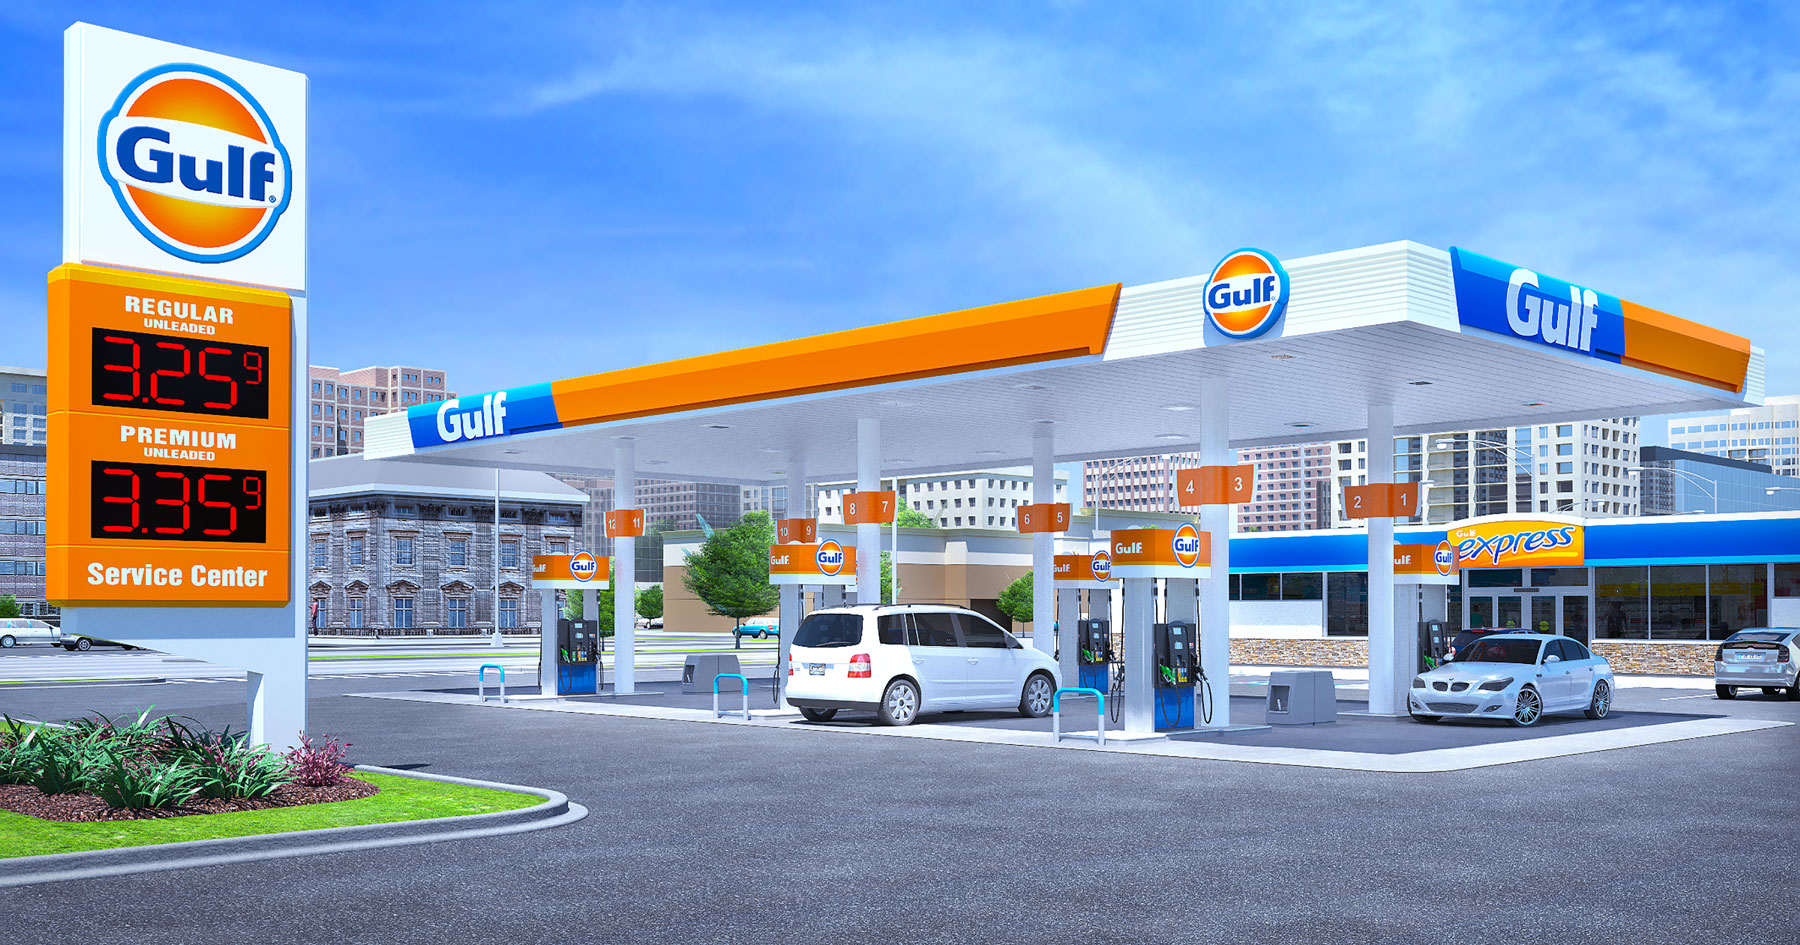 A Car Wash Diagram Gulf Oil Refreshing Brand Updating C Store Image